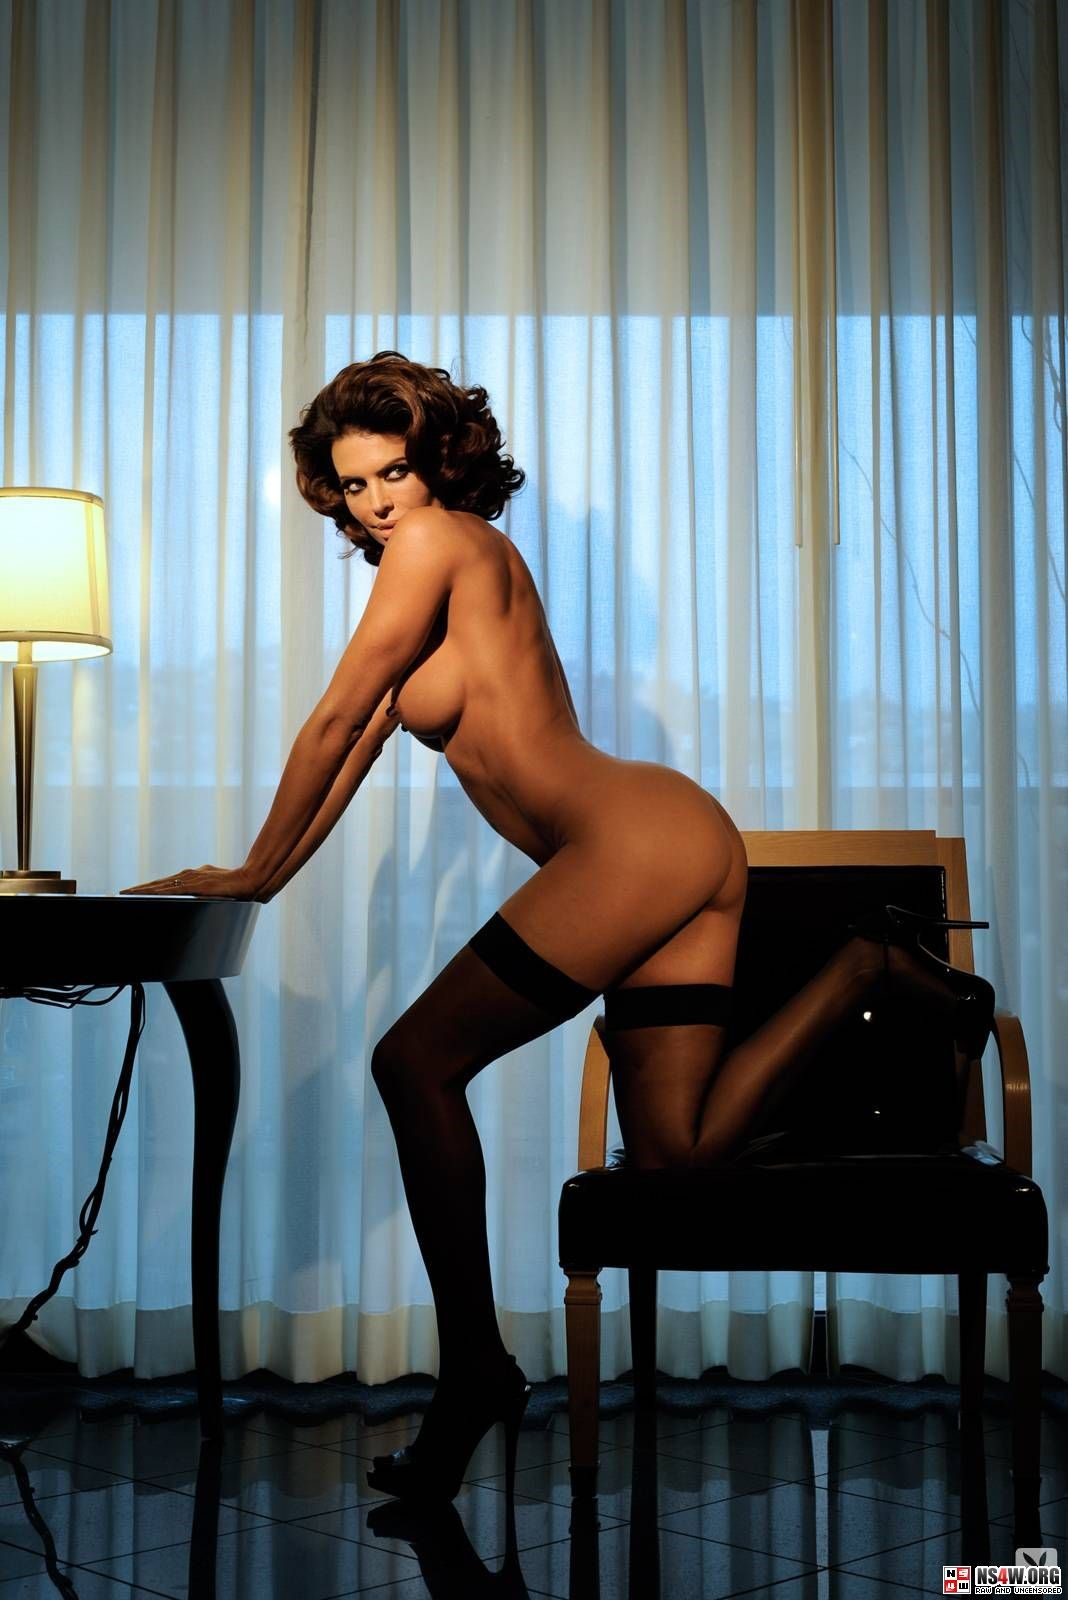 Authoritative playboy lisa rinna naked think, that